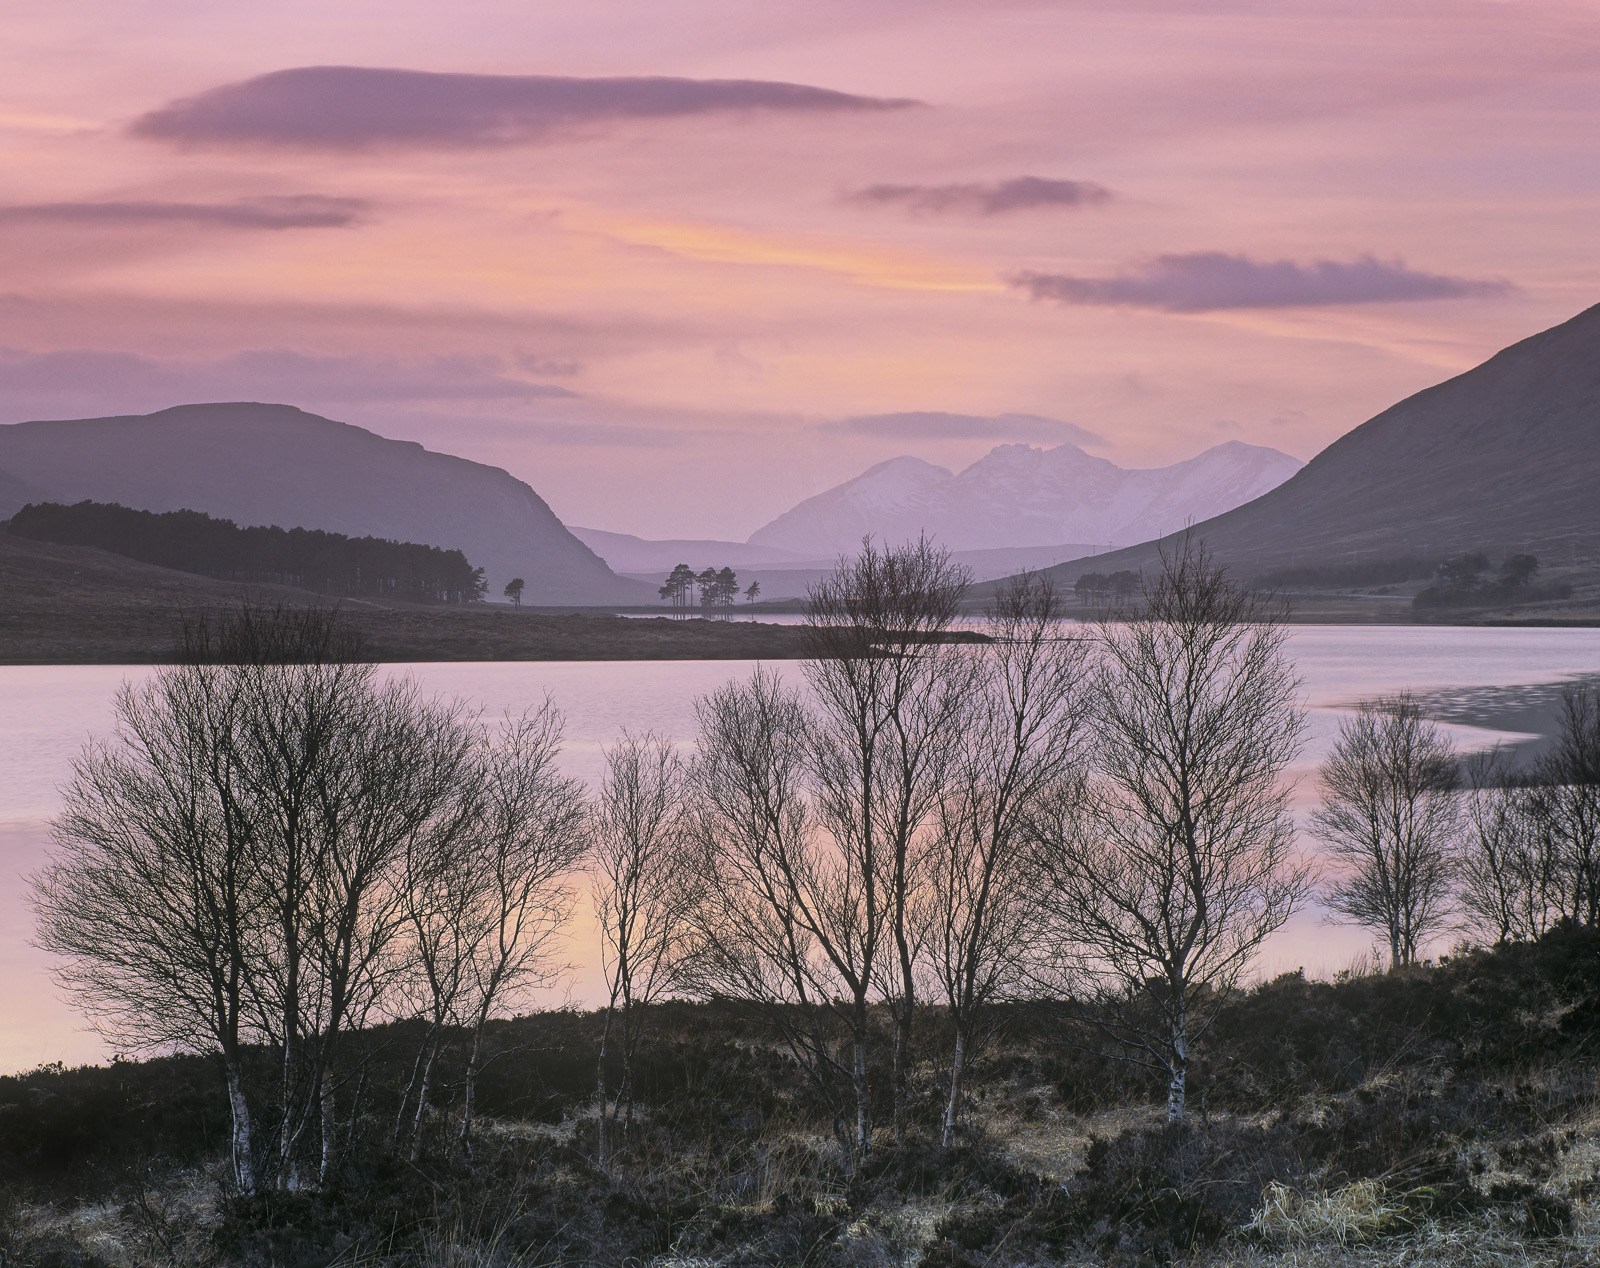 A location I have always loved, not least because it is the gateway to one of my favourite photographic locations in Scotland...